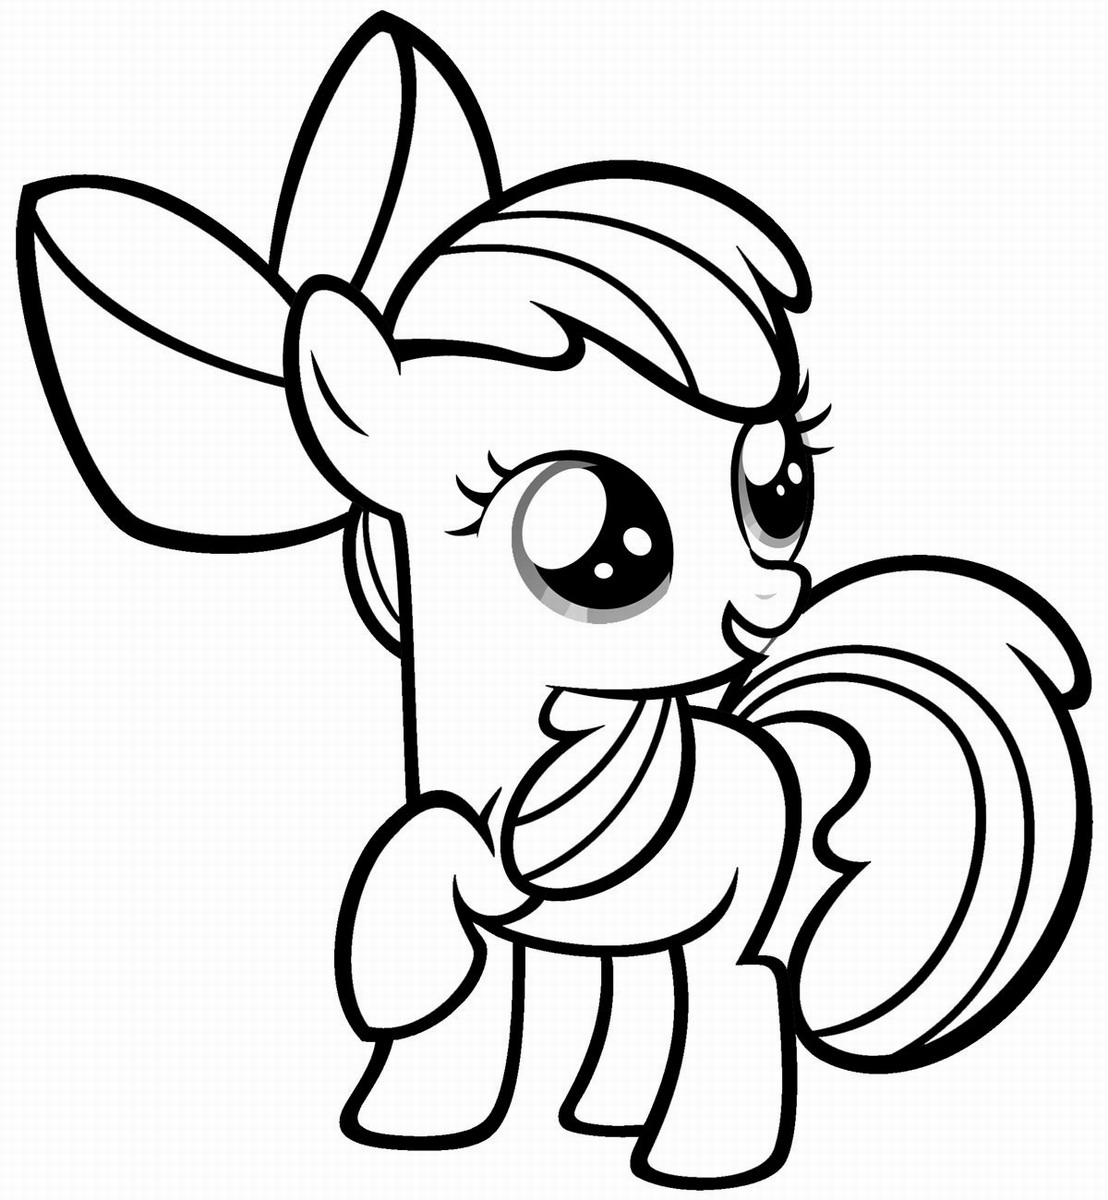 mlp coloring my little pony coloring pages mlp coloring 1 1